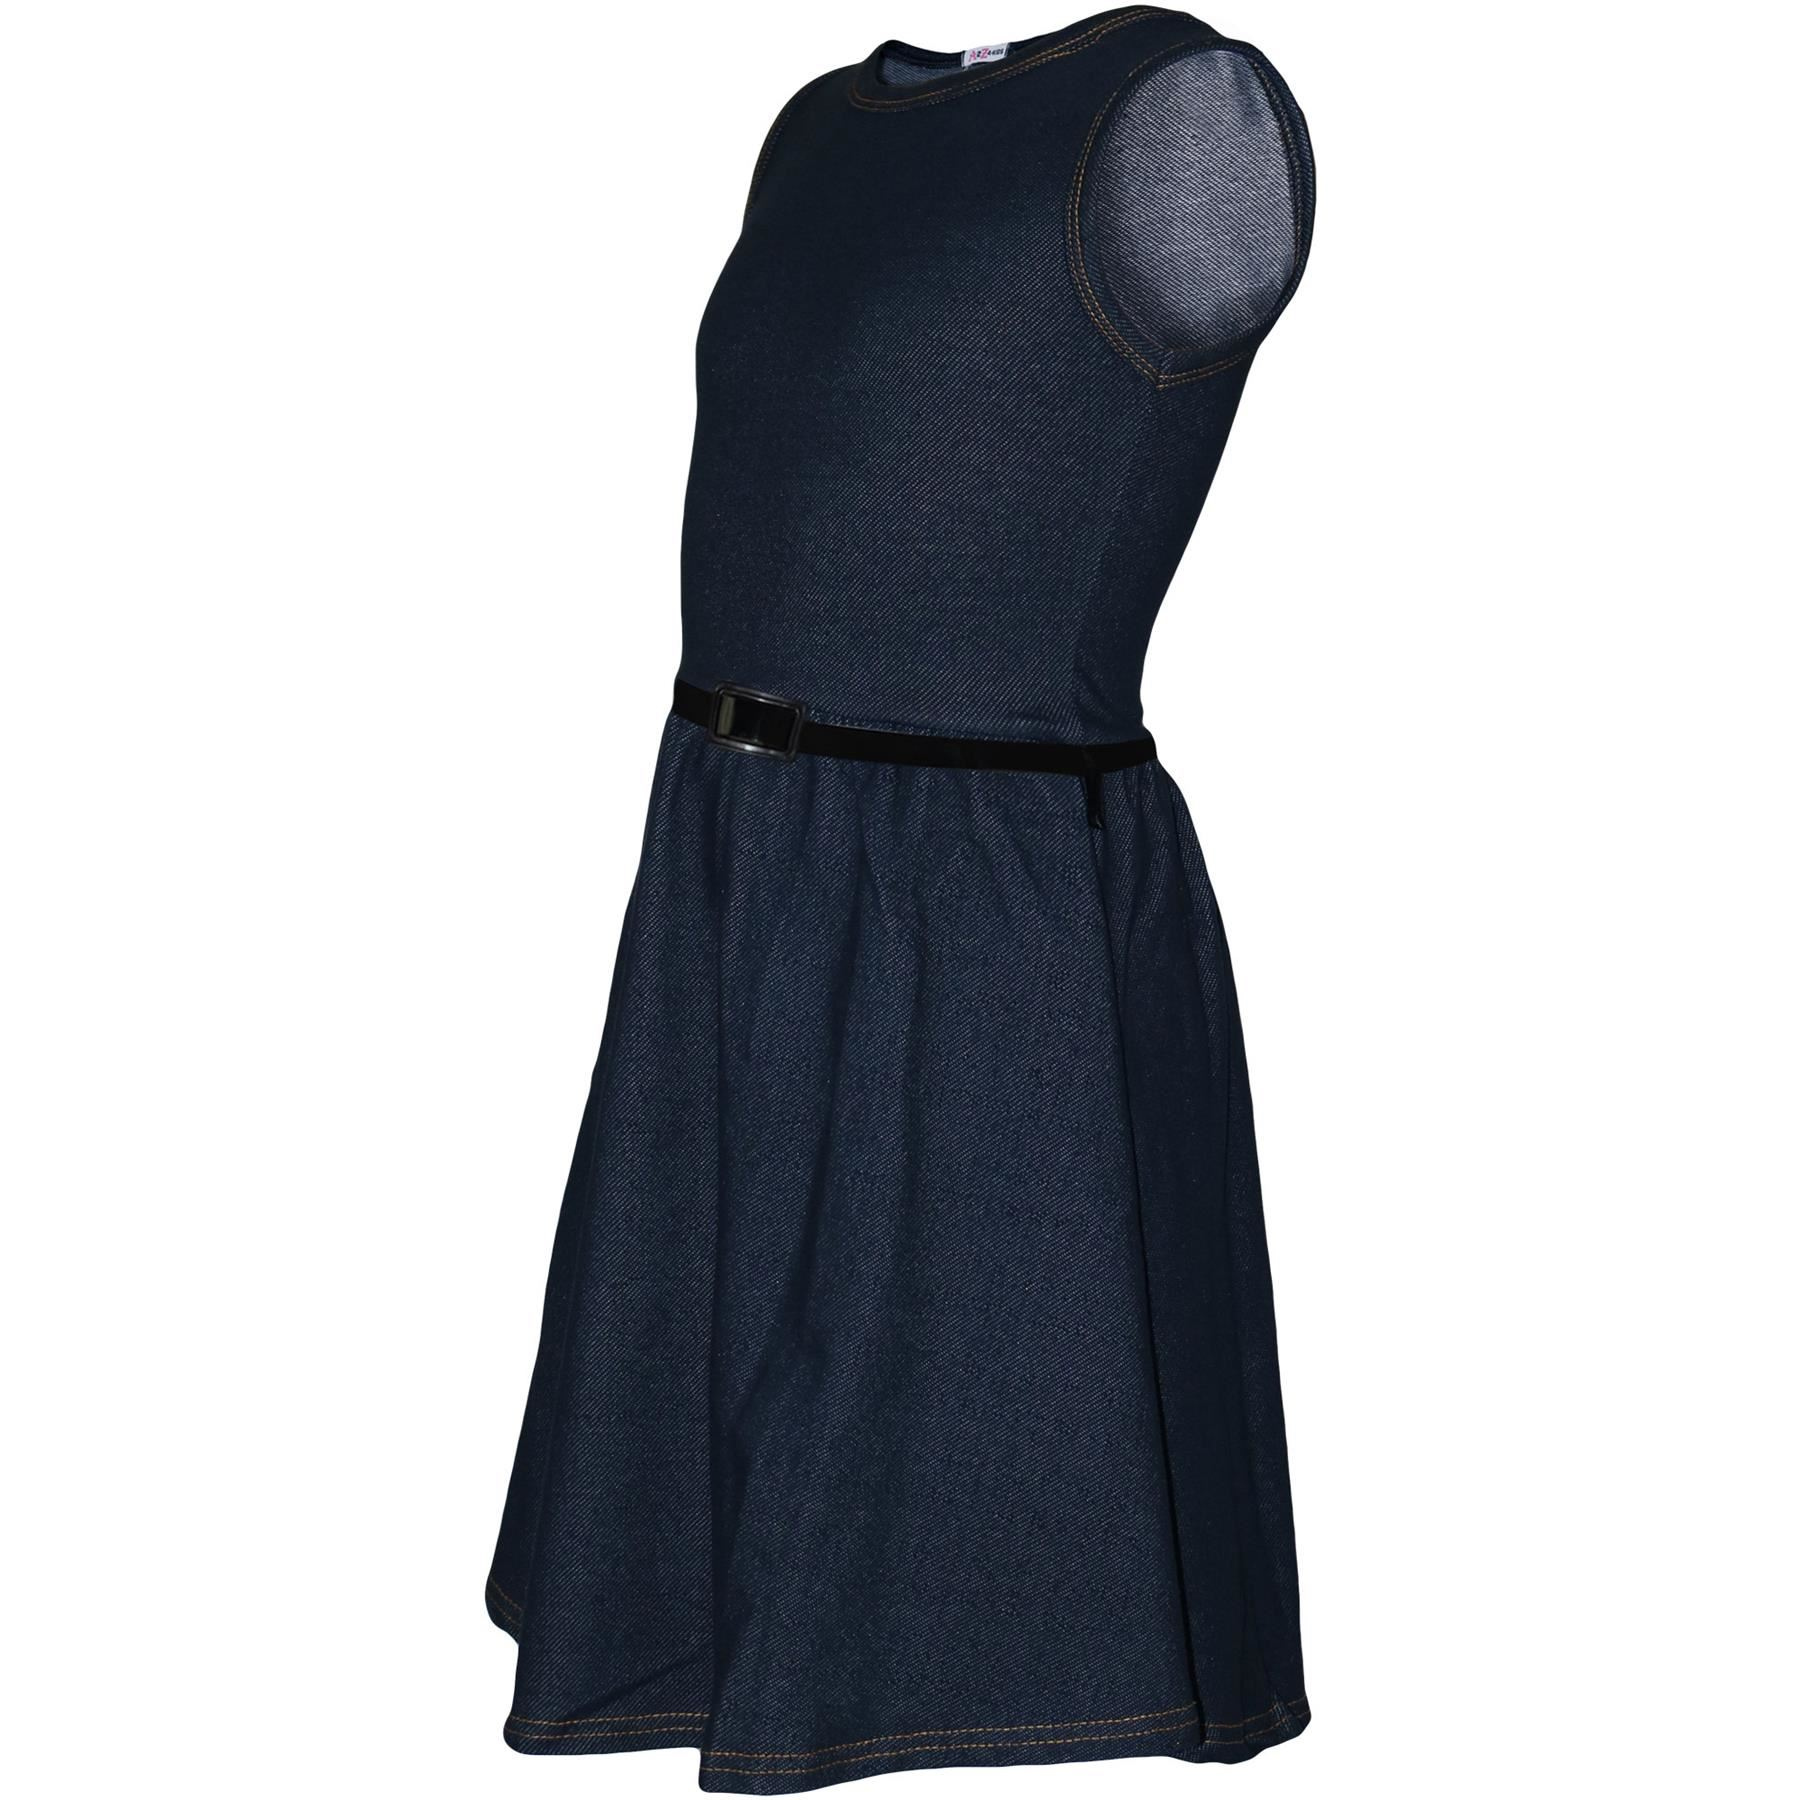 Girls-Skater-Dress-Kids-Party-Dresses-With-Free-Belt-5-6-7-8-9-10-11-12-13-Years thumbnail 27